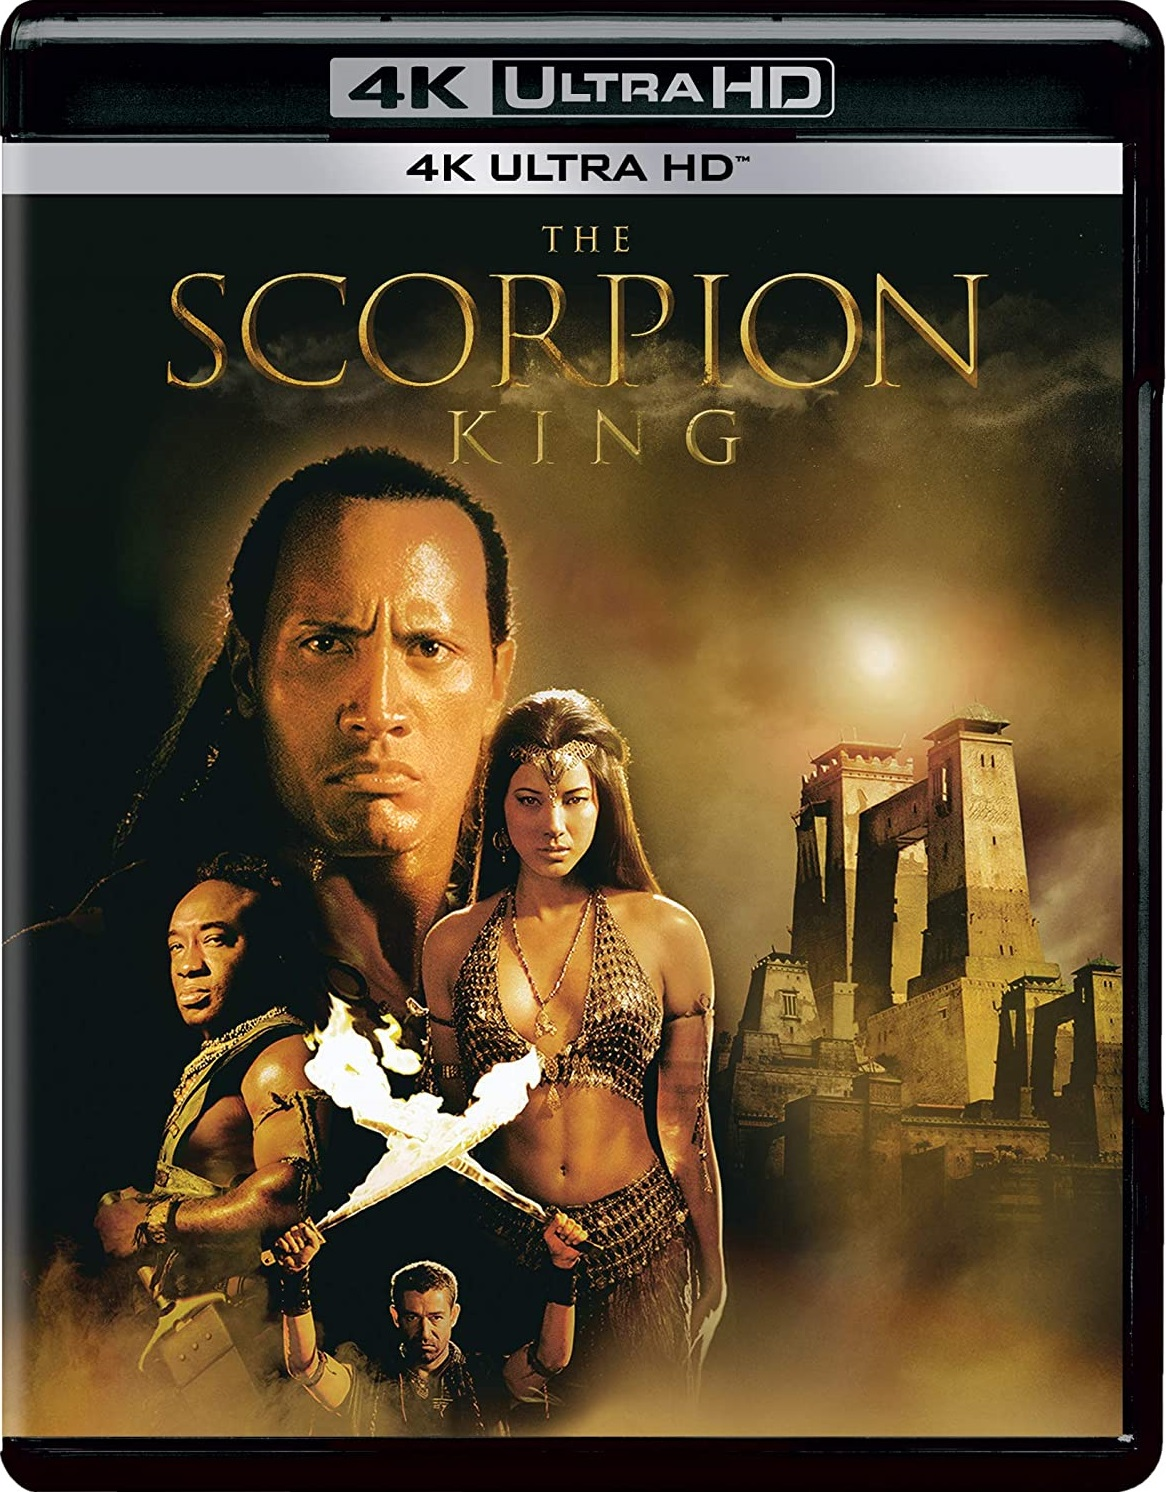 Król Skorpion - The Scorpion King (2002) - Film 4K Ultra-HD